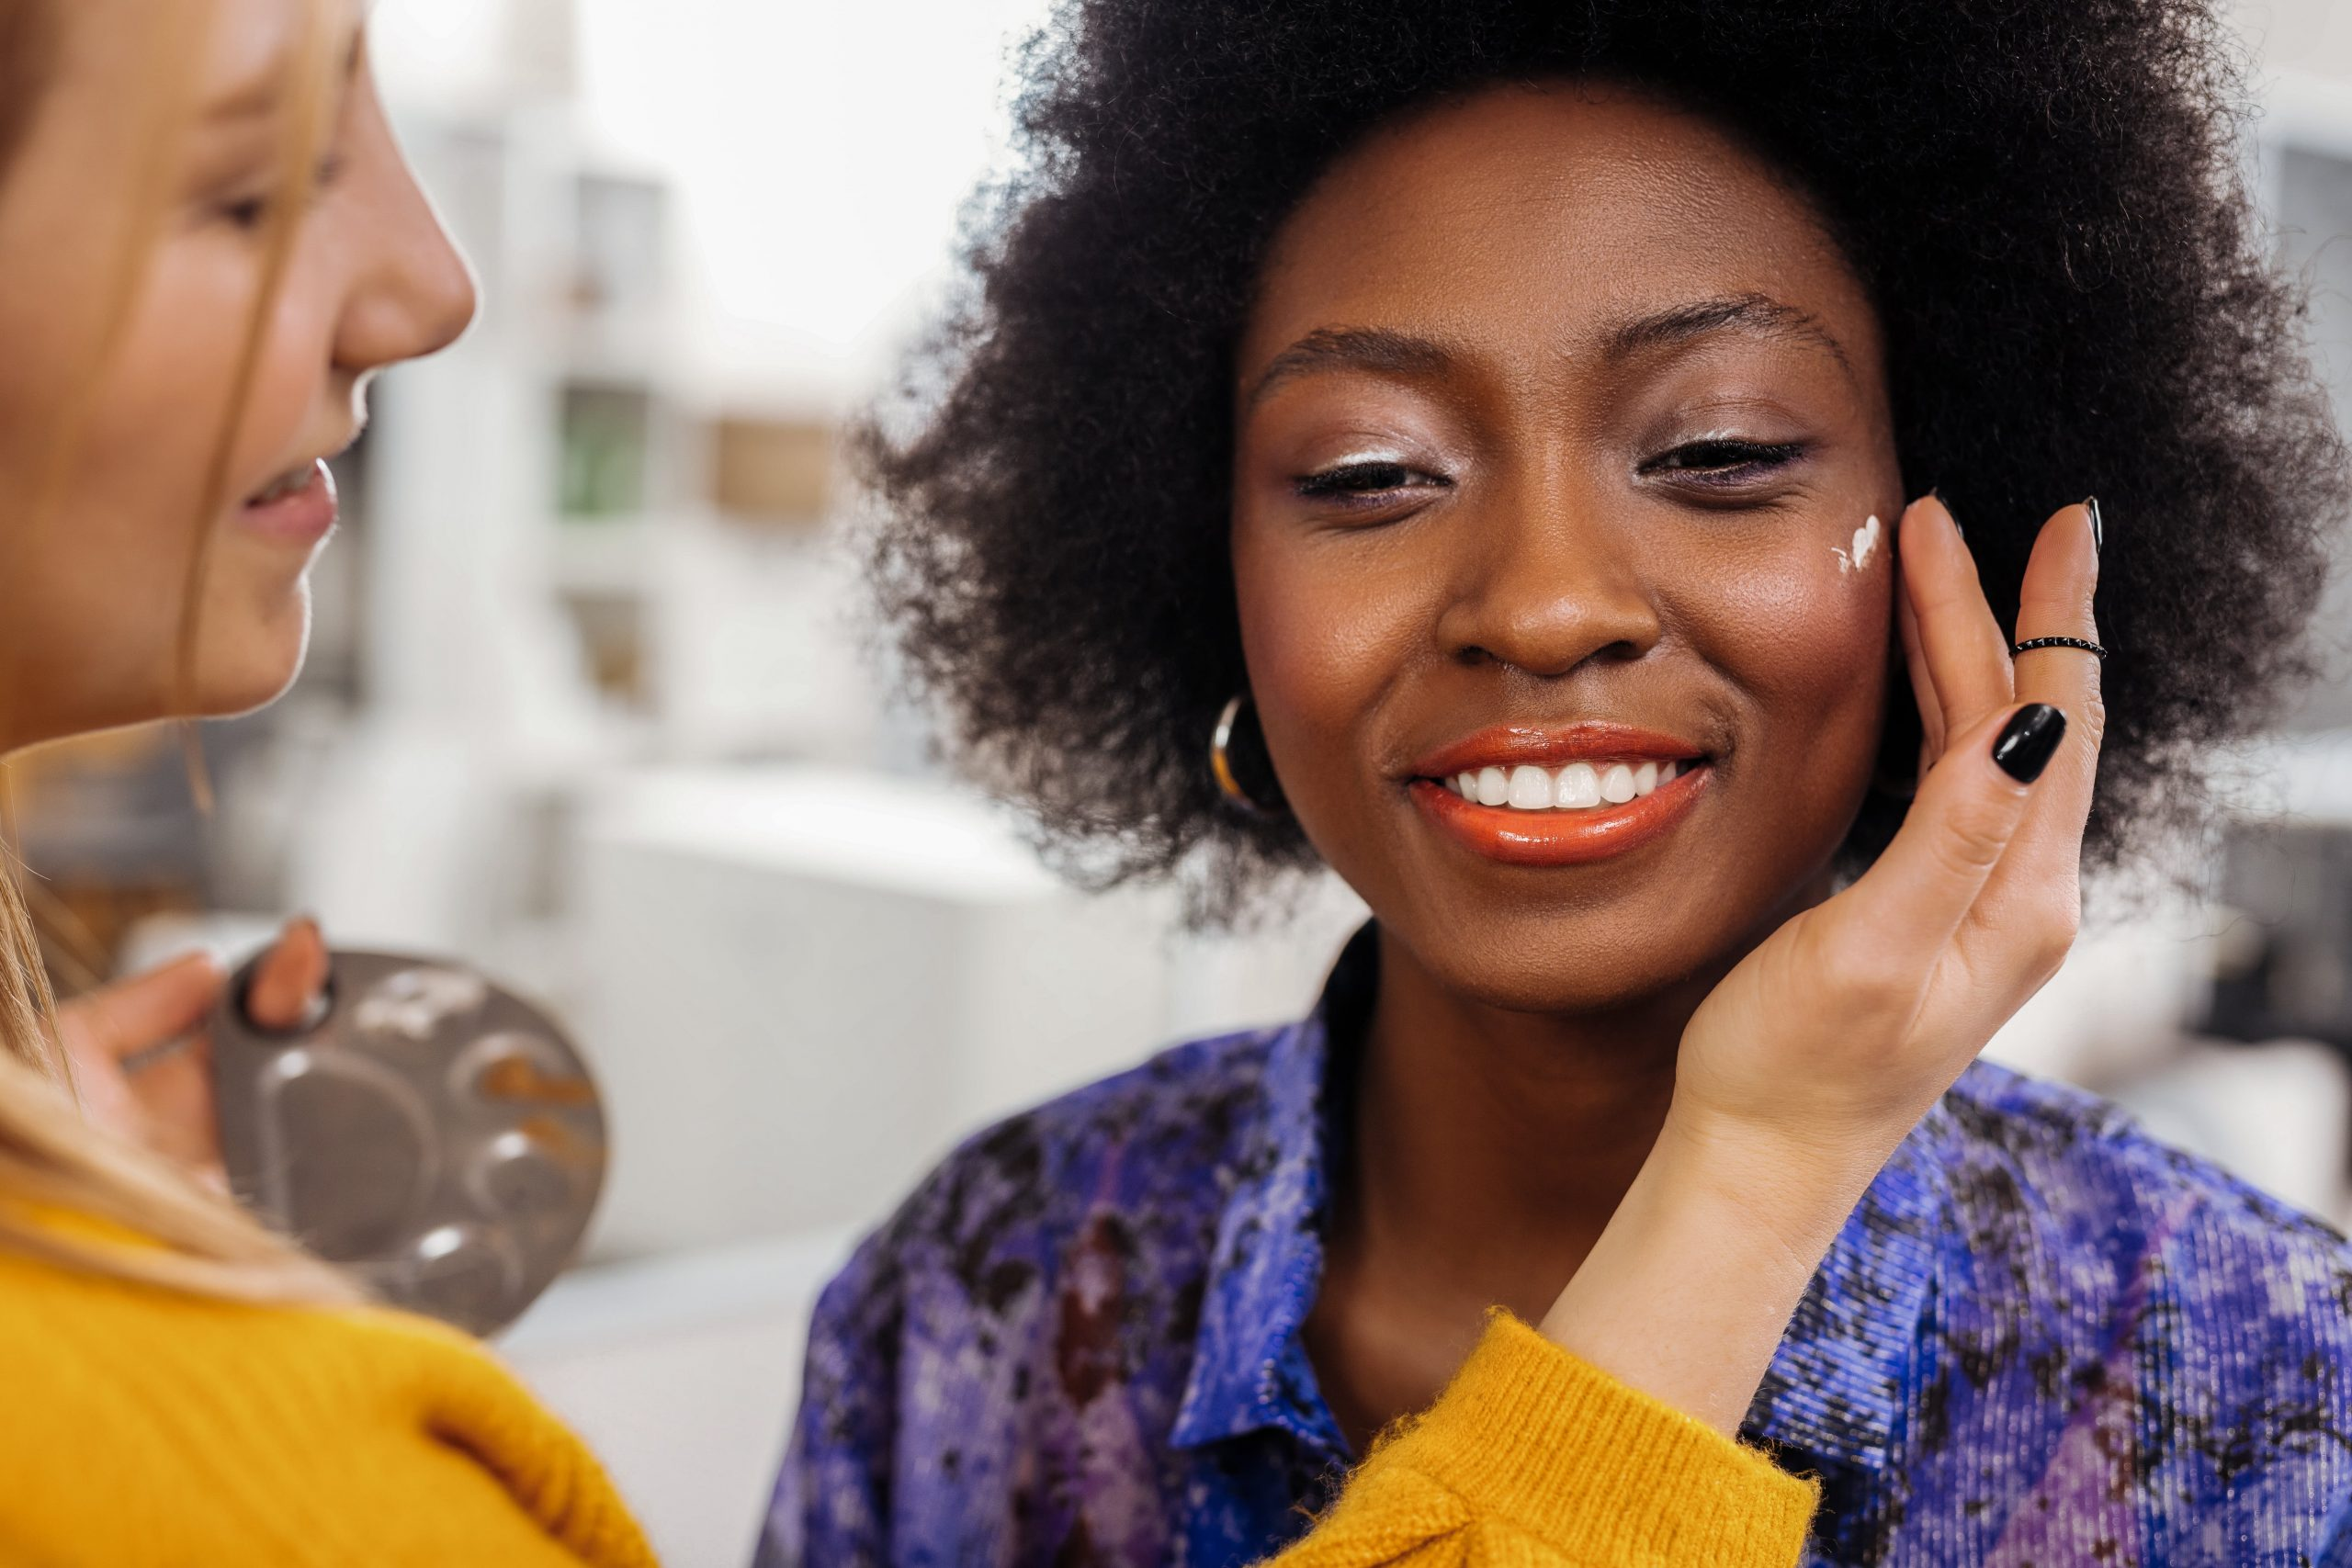 woman smiling while she gets her makeup done